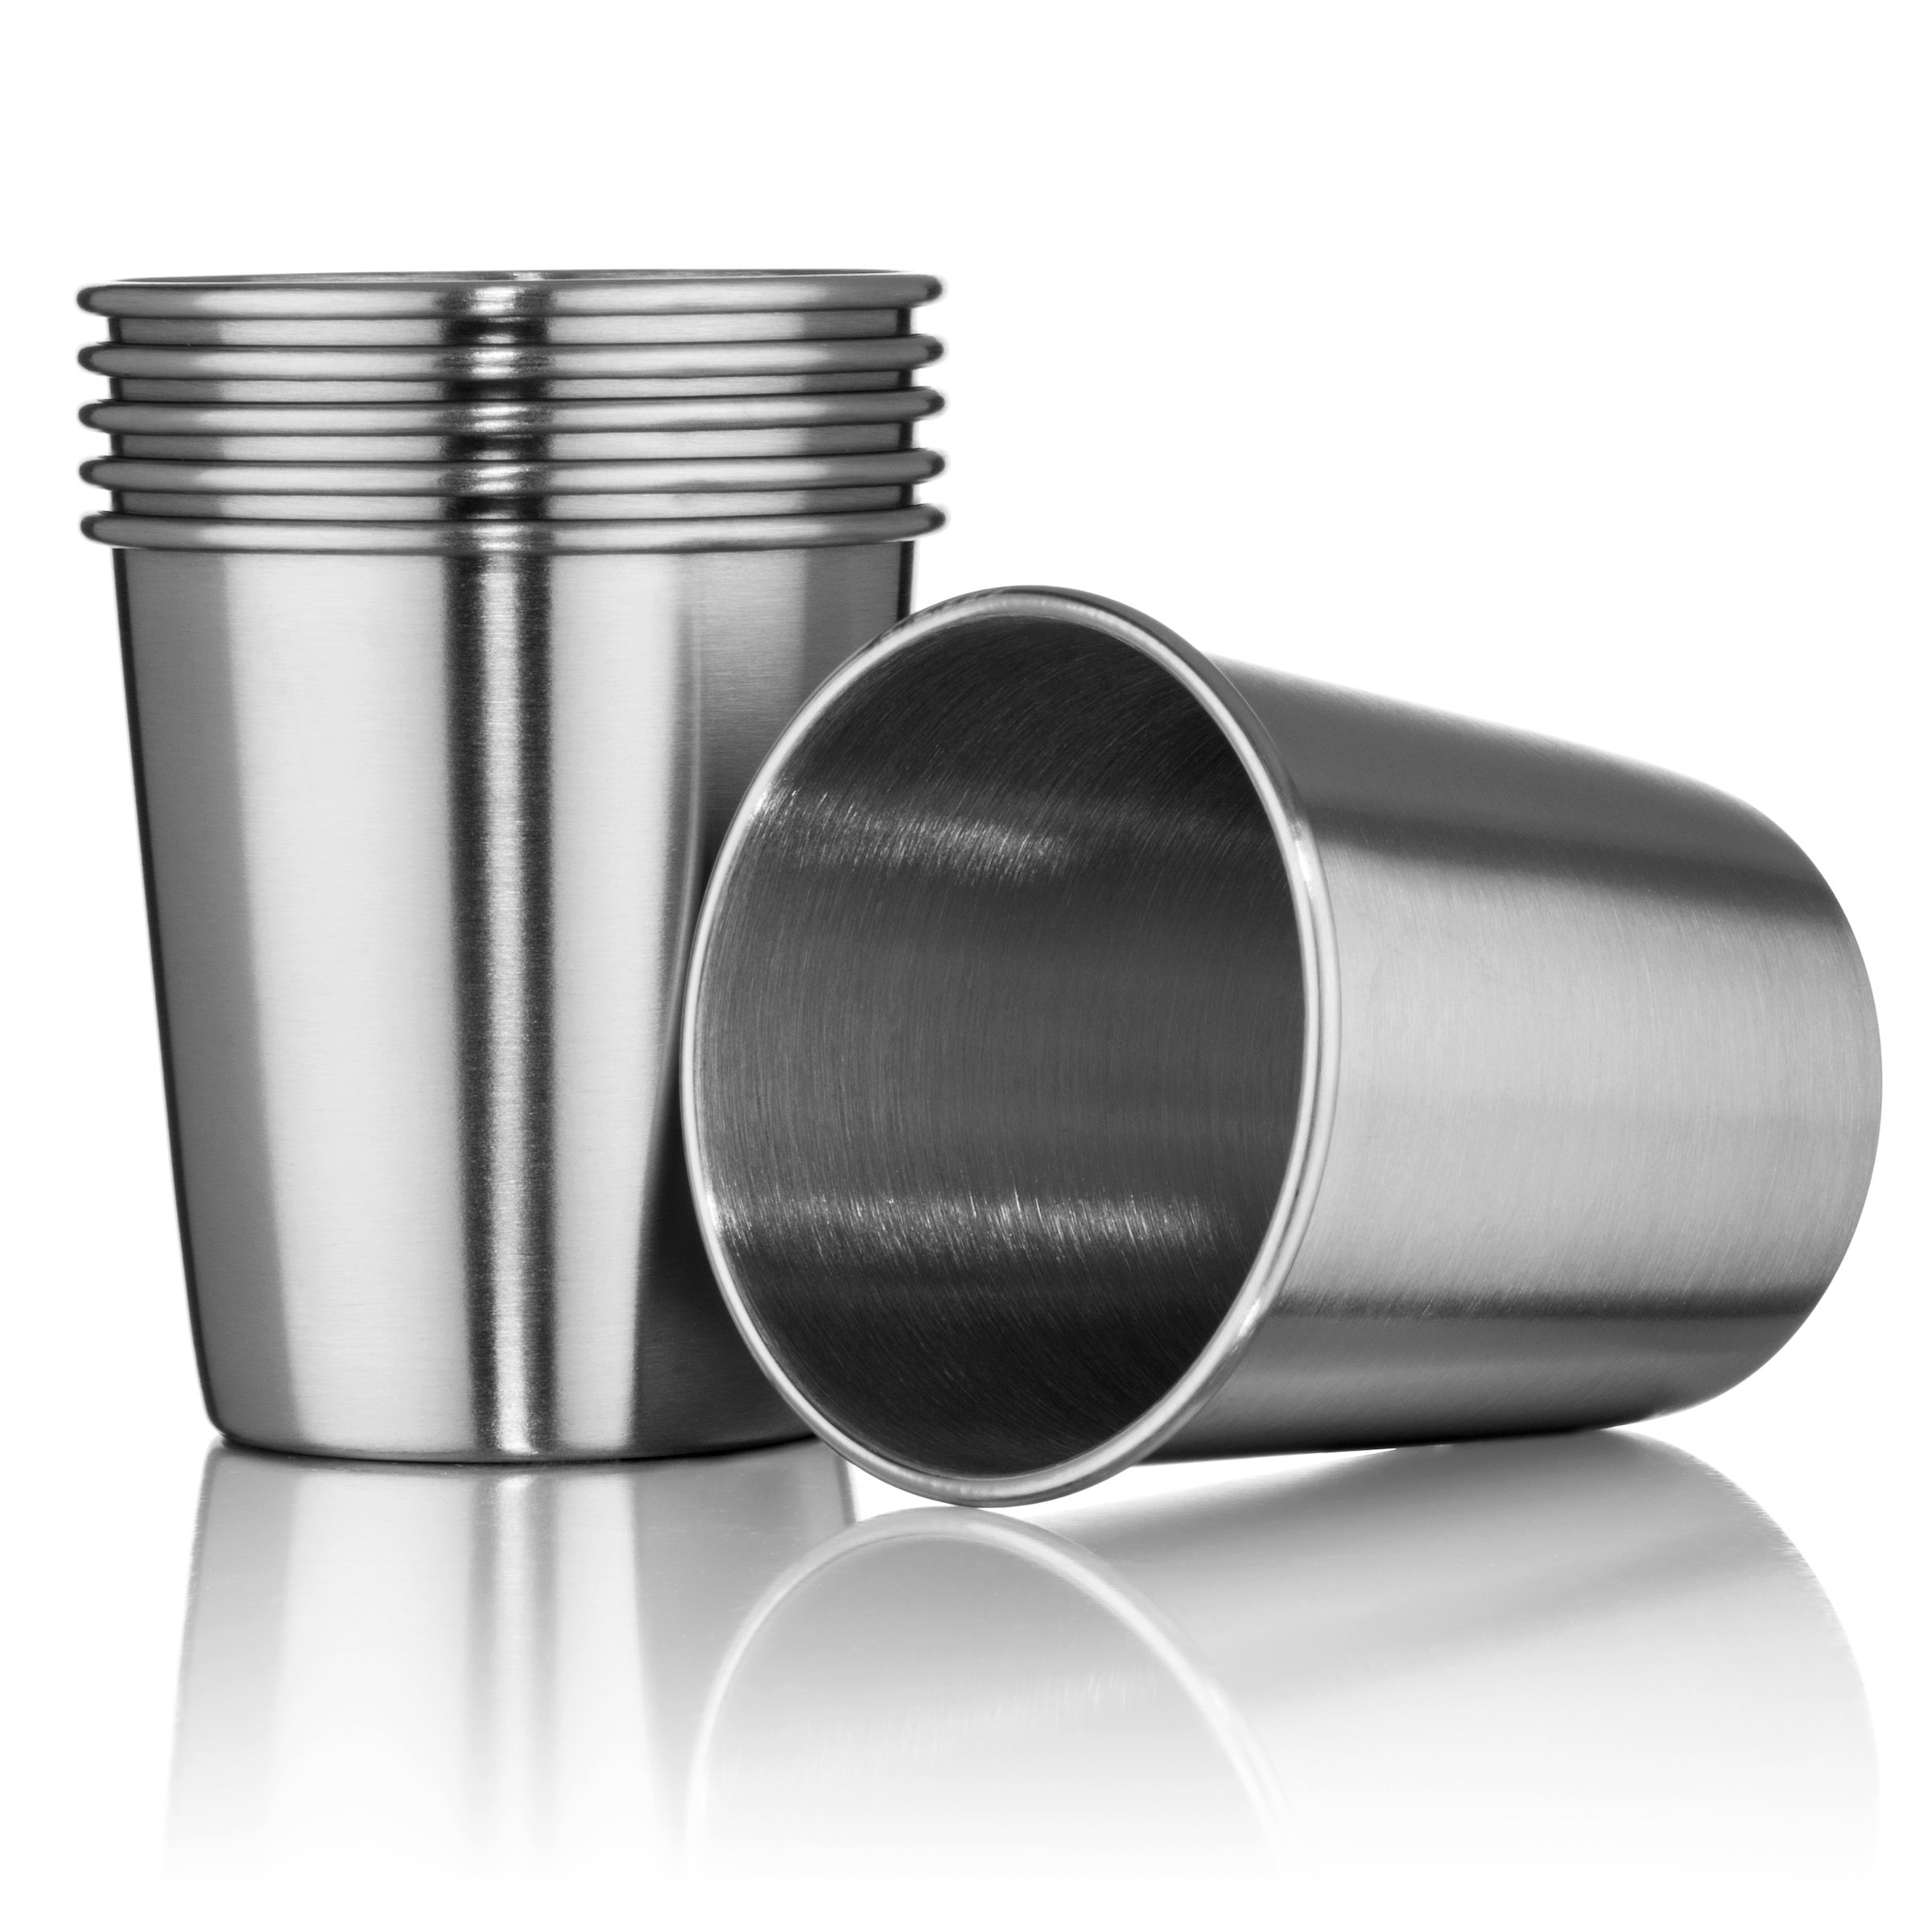 Hudson Essential 7 oz. Stainless Steel Cups - Stackable and Unbreakable Drinking Cups- Great for Kids - Set of 6 (7 oz.)